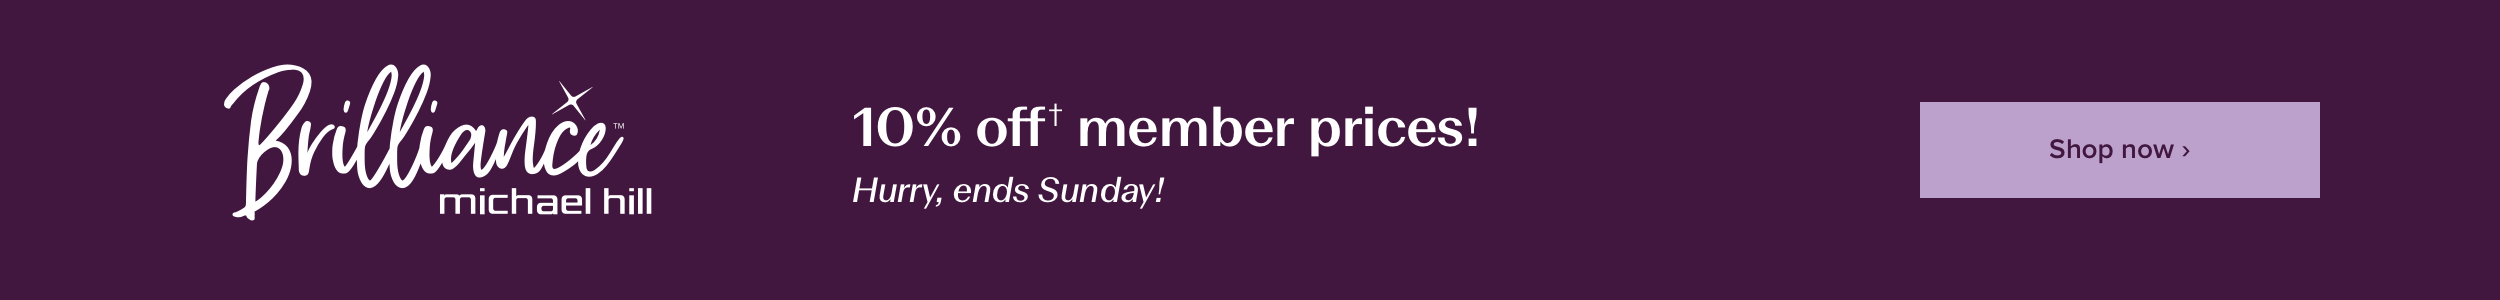 10% off Member Price with Michael Hill Brilliance